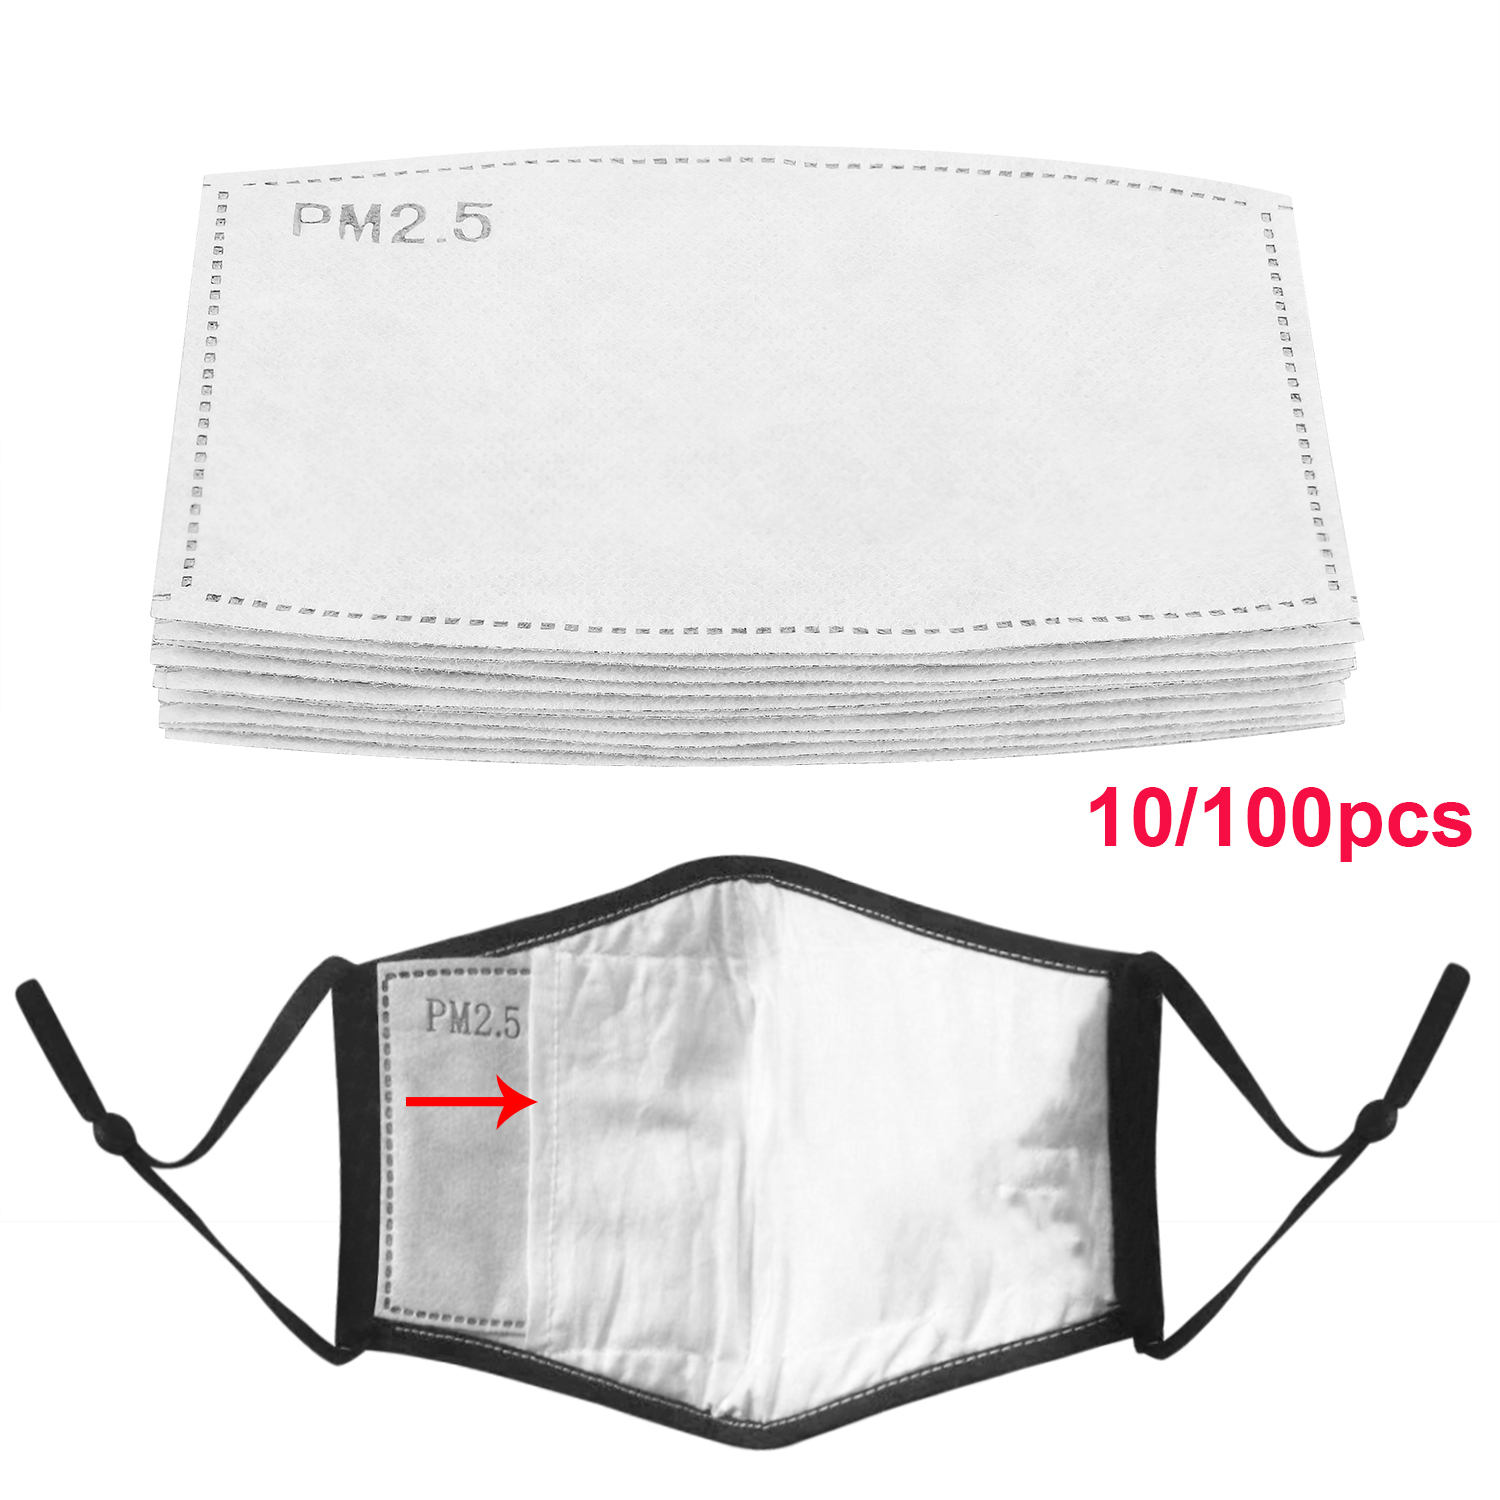 10/20/50/100Pcs Anti Dust Droplets Mask Filter Replaceables Insert For PM2.5  Paper Haze Mouth Mask  100pcs Filters